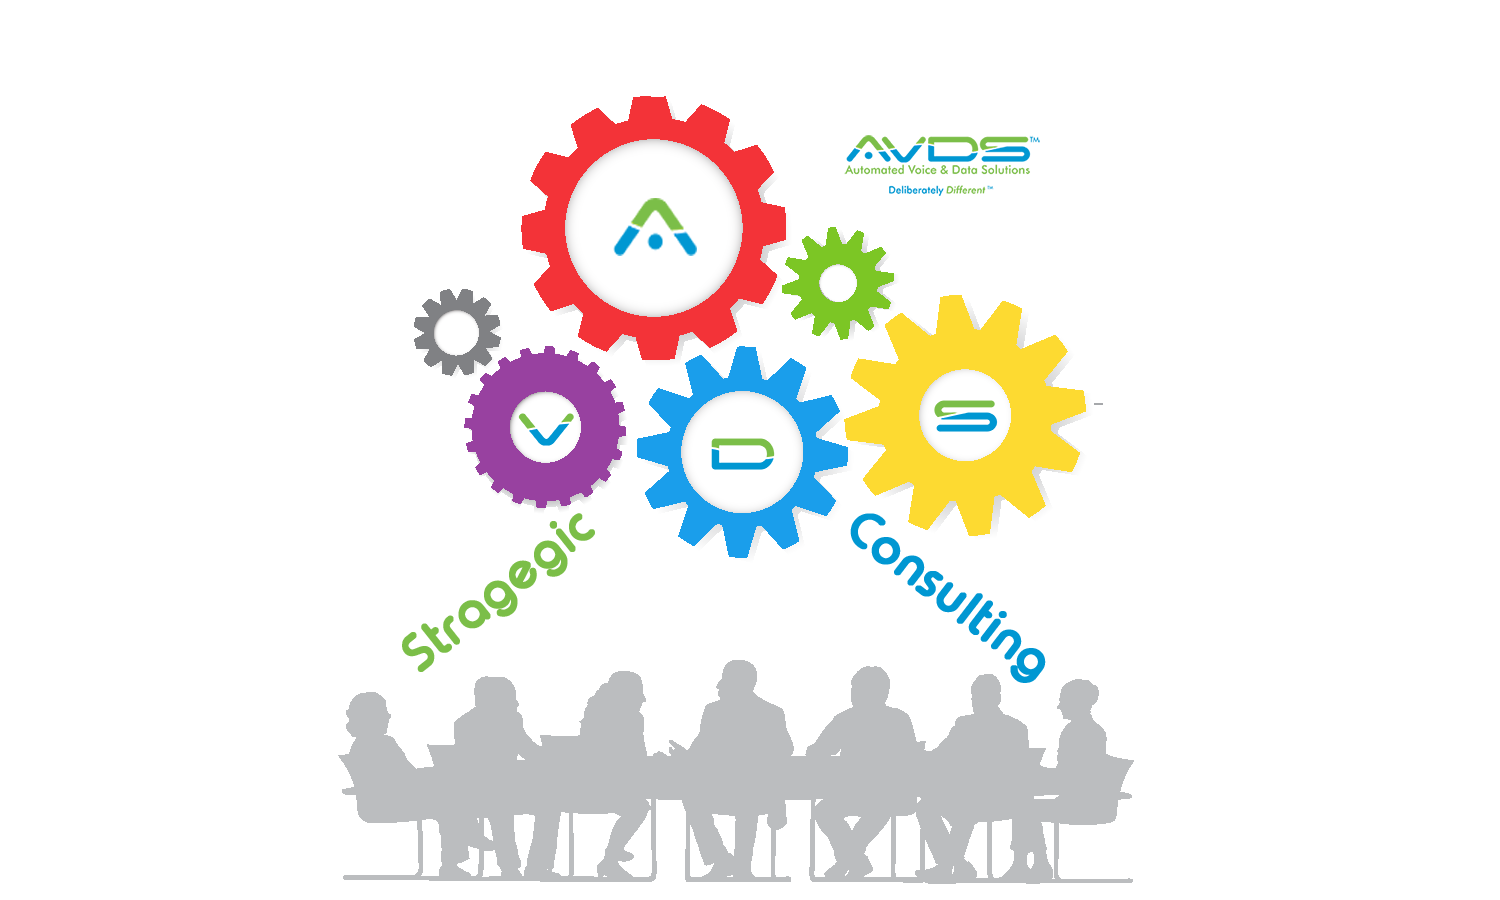 Avds blog contact center. Future clipart planned